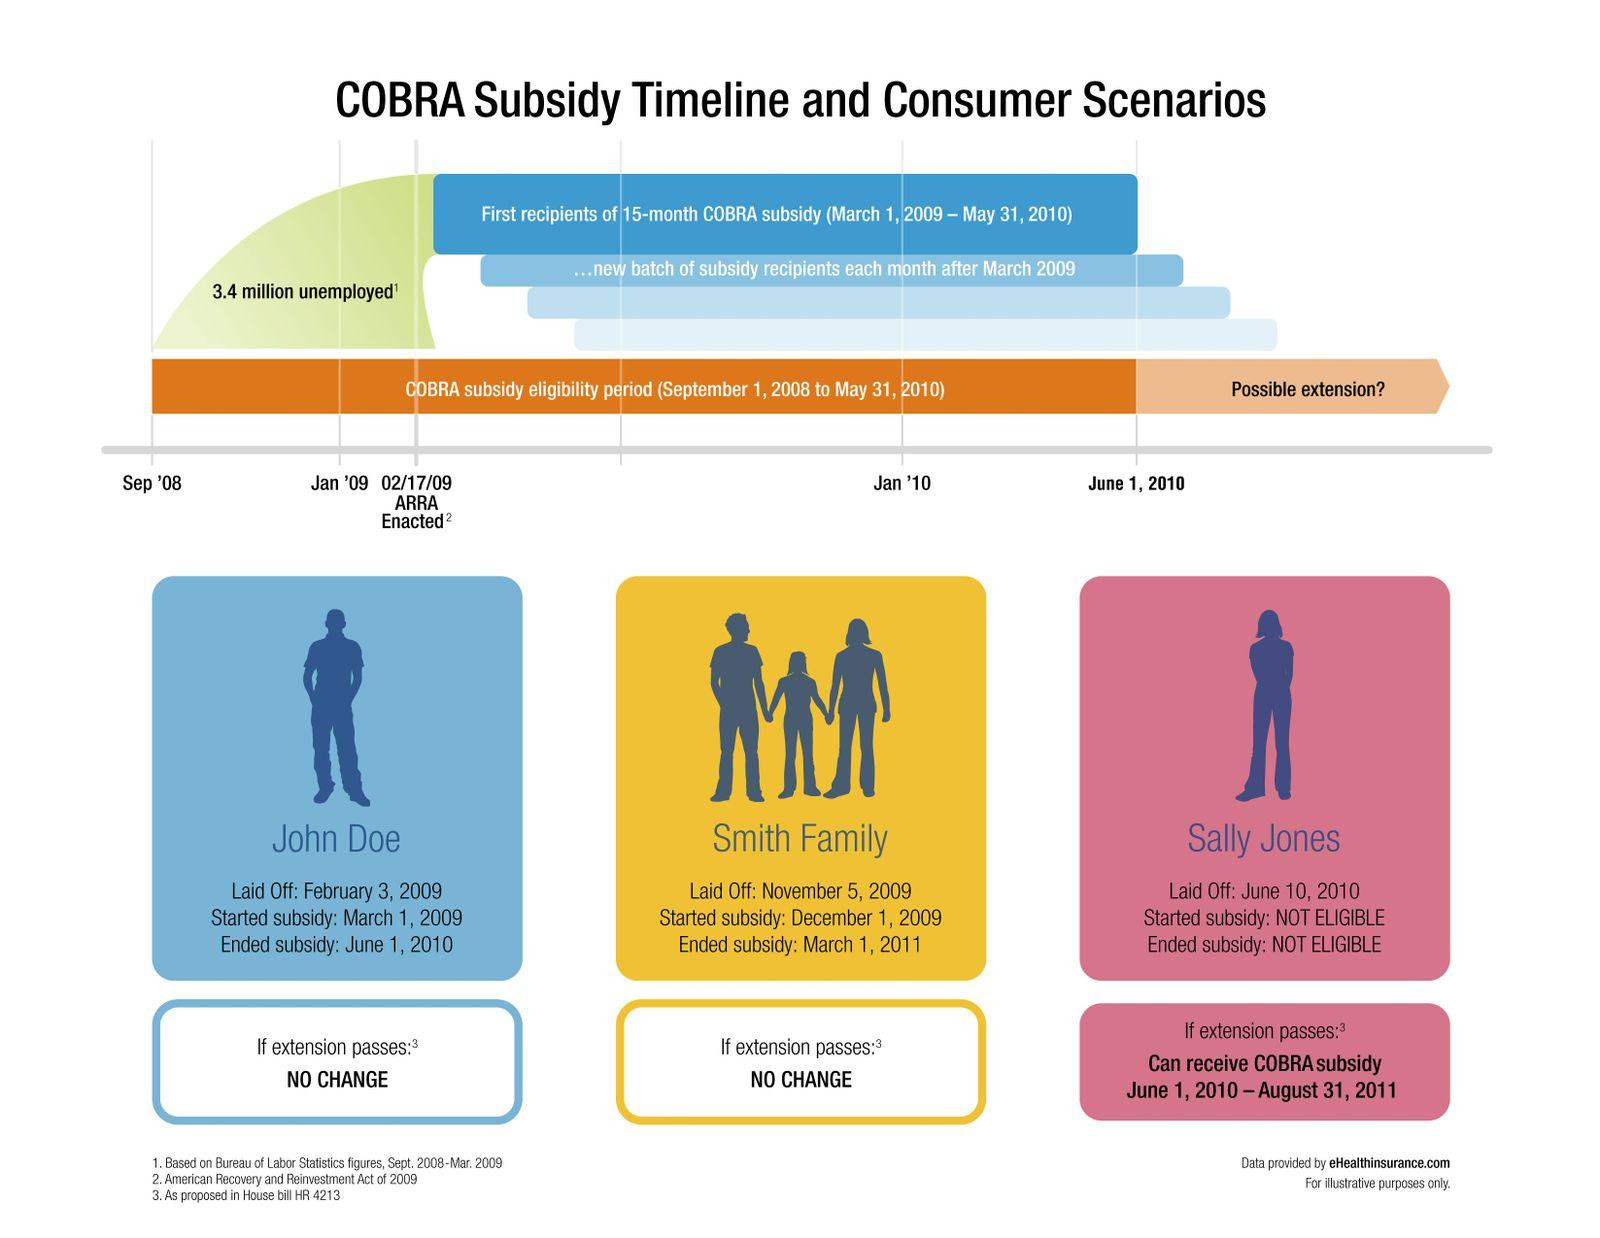 COBRA Subsidy Timelines